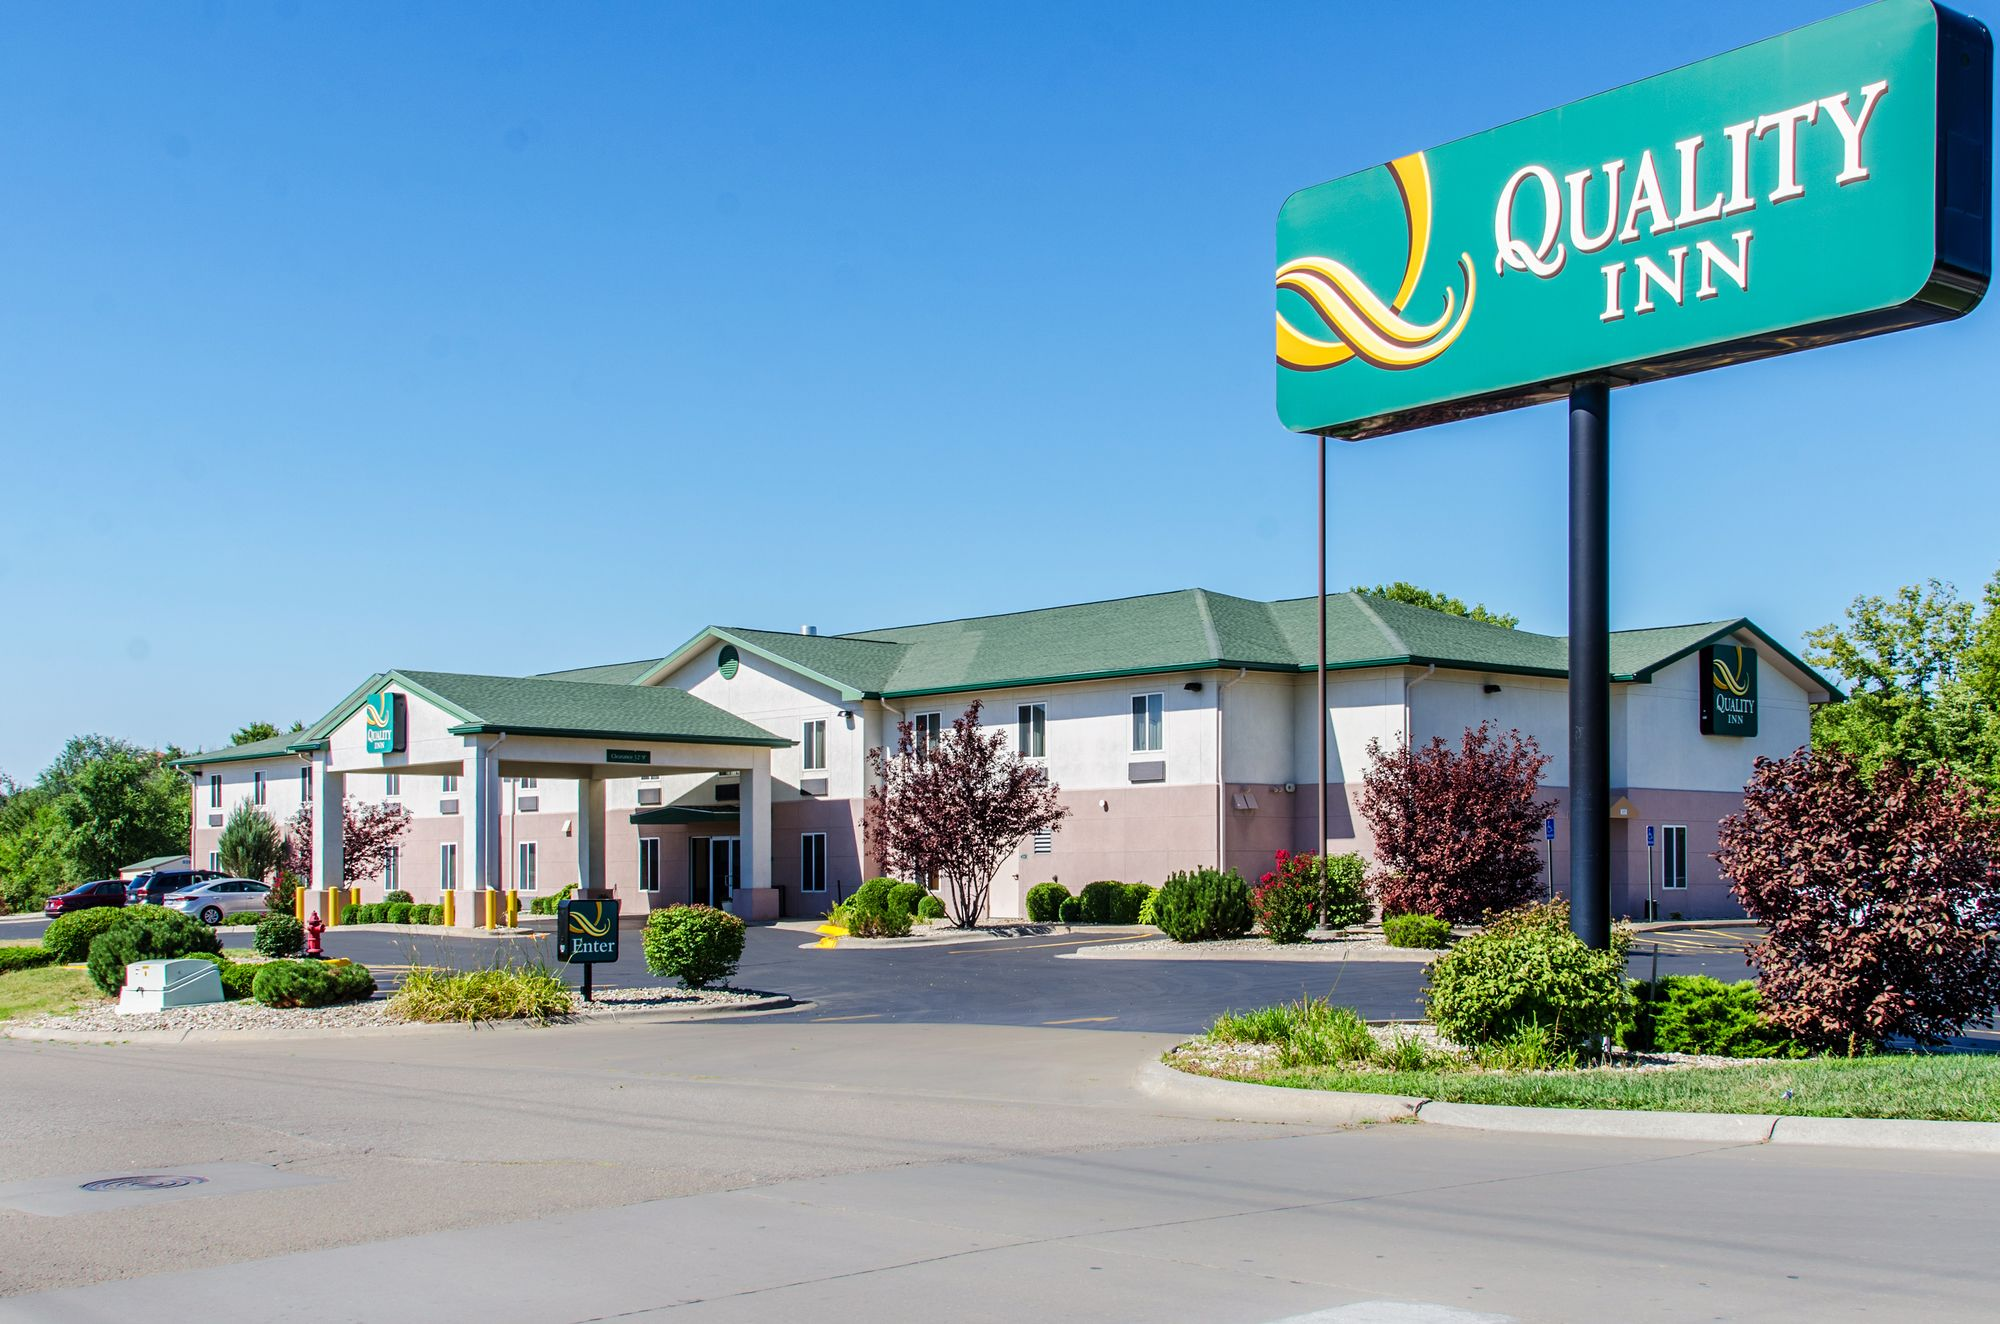 Quality Inn Coupons and Deals including: 10% Off for Senior Citizens, Up to 20% Off Participating Hotels, Up to 10% Off for AAA CAA Members, 10% Off for Active Military, Veterans and Dependants, Up to 10% Off for State Employees and Government Travelers, Get 10 Points Per $1 Plus Lowest Rate for Choice Privilege Members.